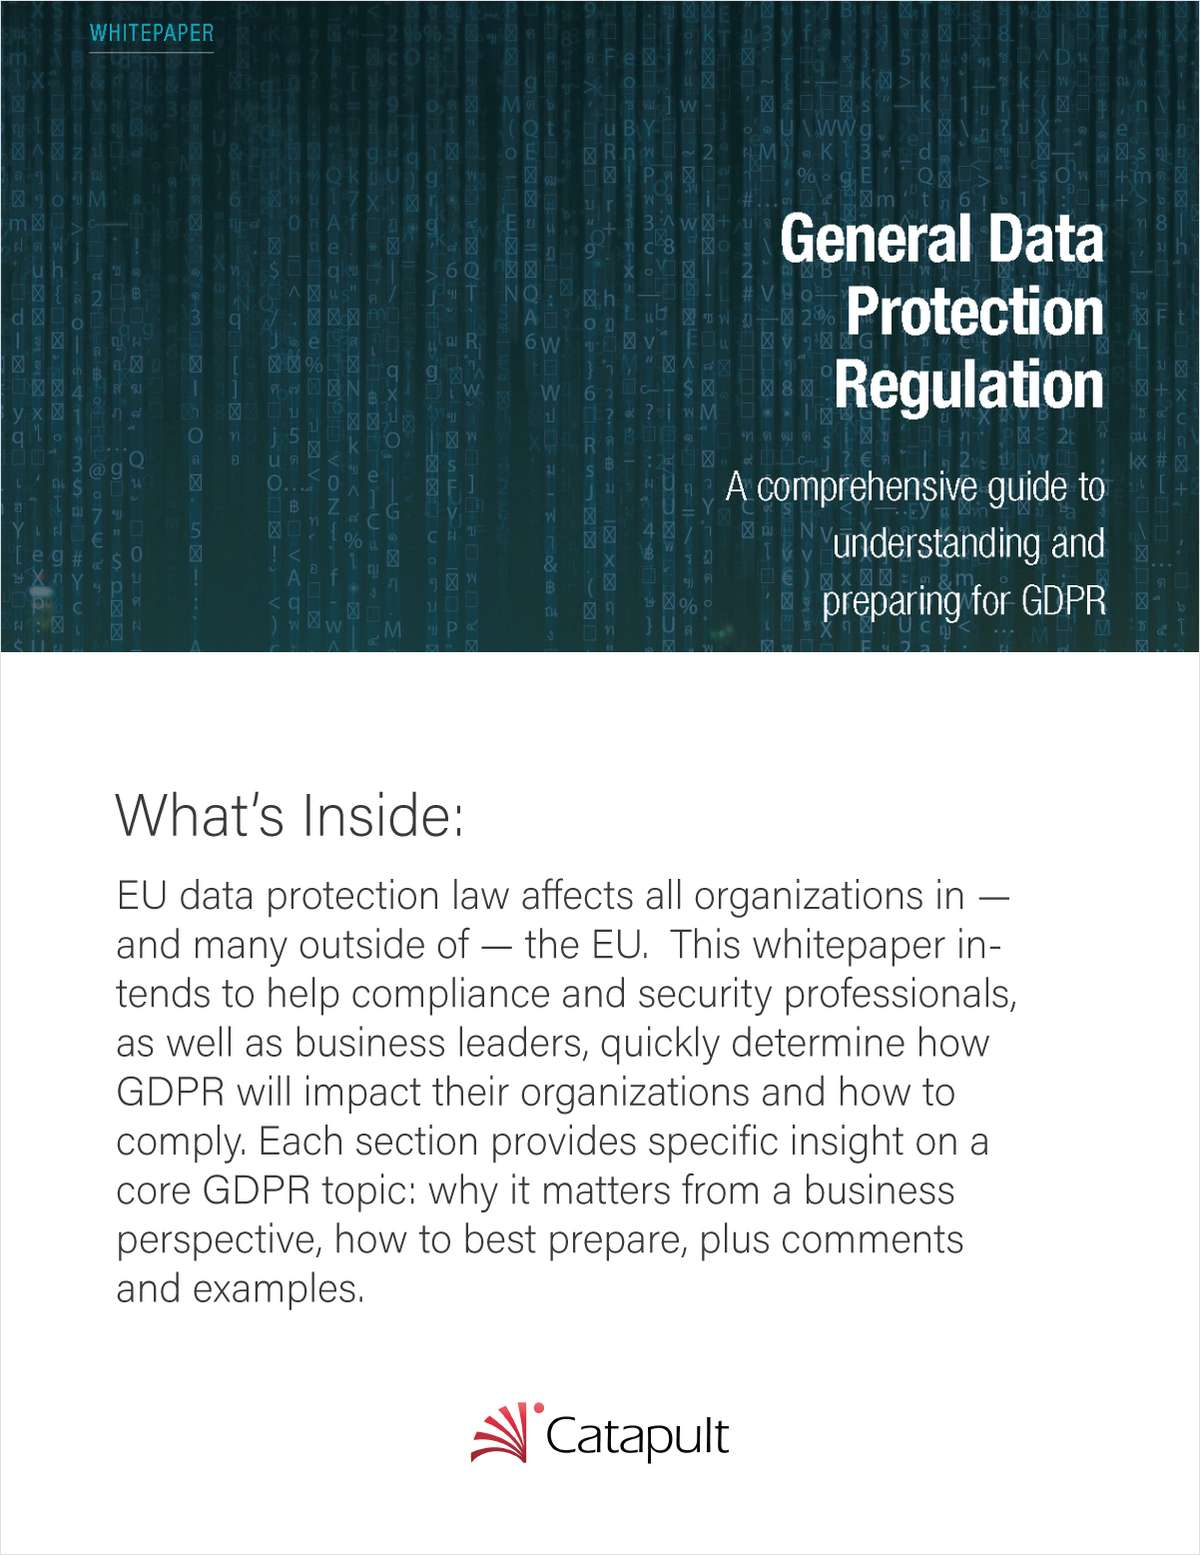 A Comprehensive Guide to GDPR